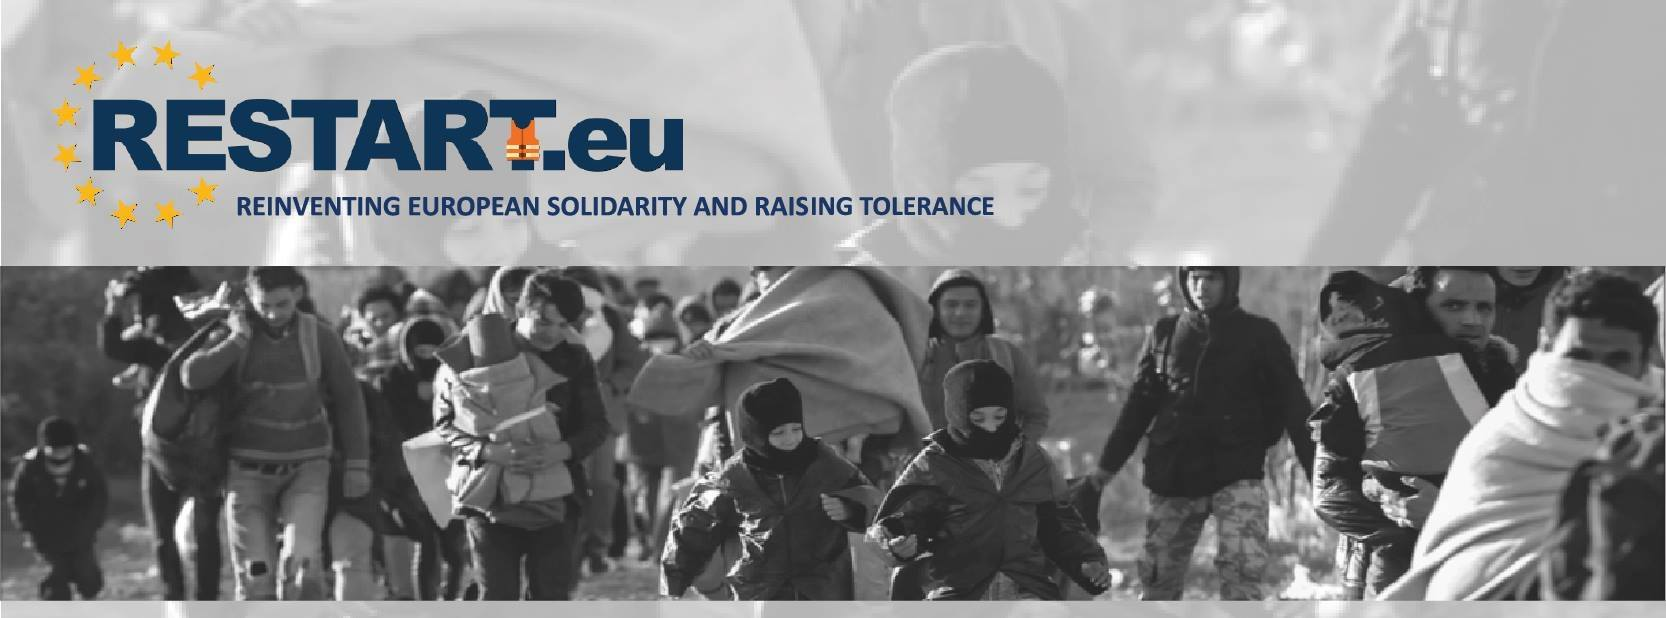 "<p>The project ""RESTART.eu – Reinventing European Solidarity and Raising Tolerance"" is pleased to announce the organization of the two-days training which will be held on 3 – 4 of June, 16:30 – 20:00 at First Euroflat Hotel in Brussels. In general the participants will receive a two days training on [&hellip;]</p>"